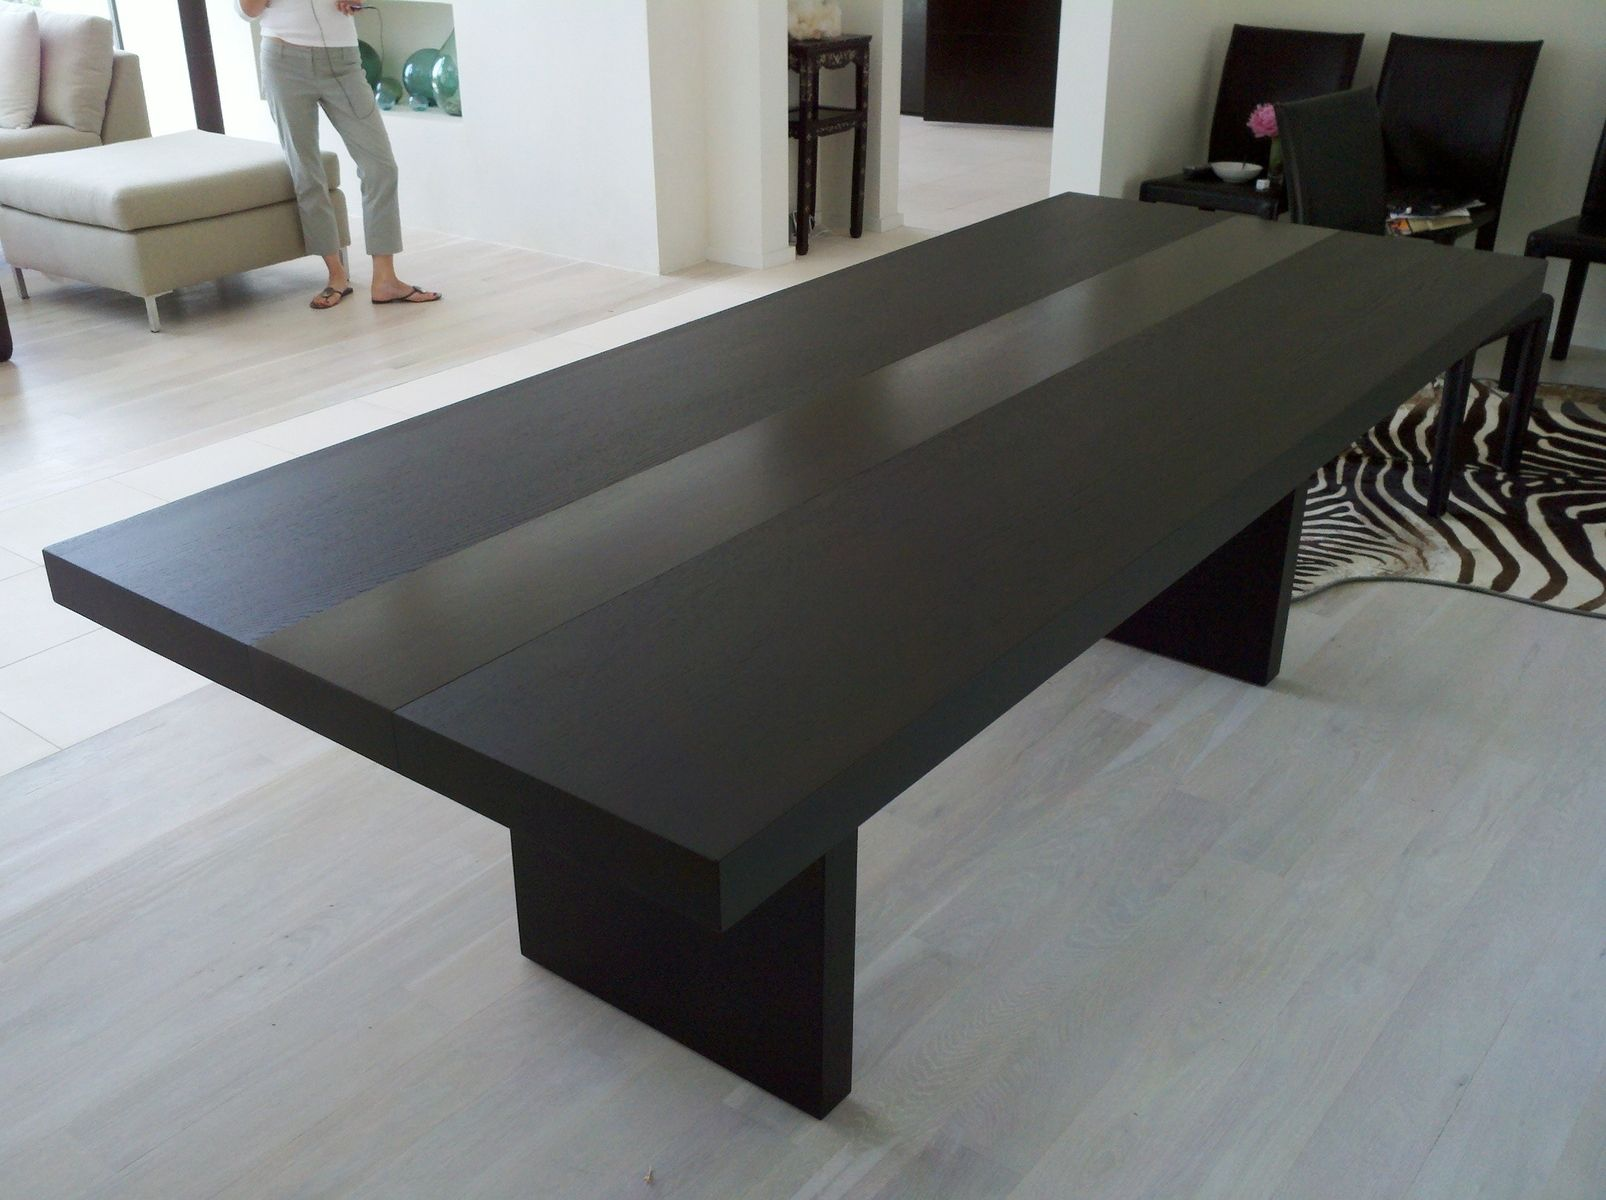 Modern Dining Tables handmade modern dining tablebedre woodworking | custommade